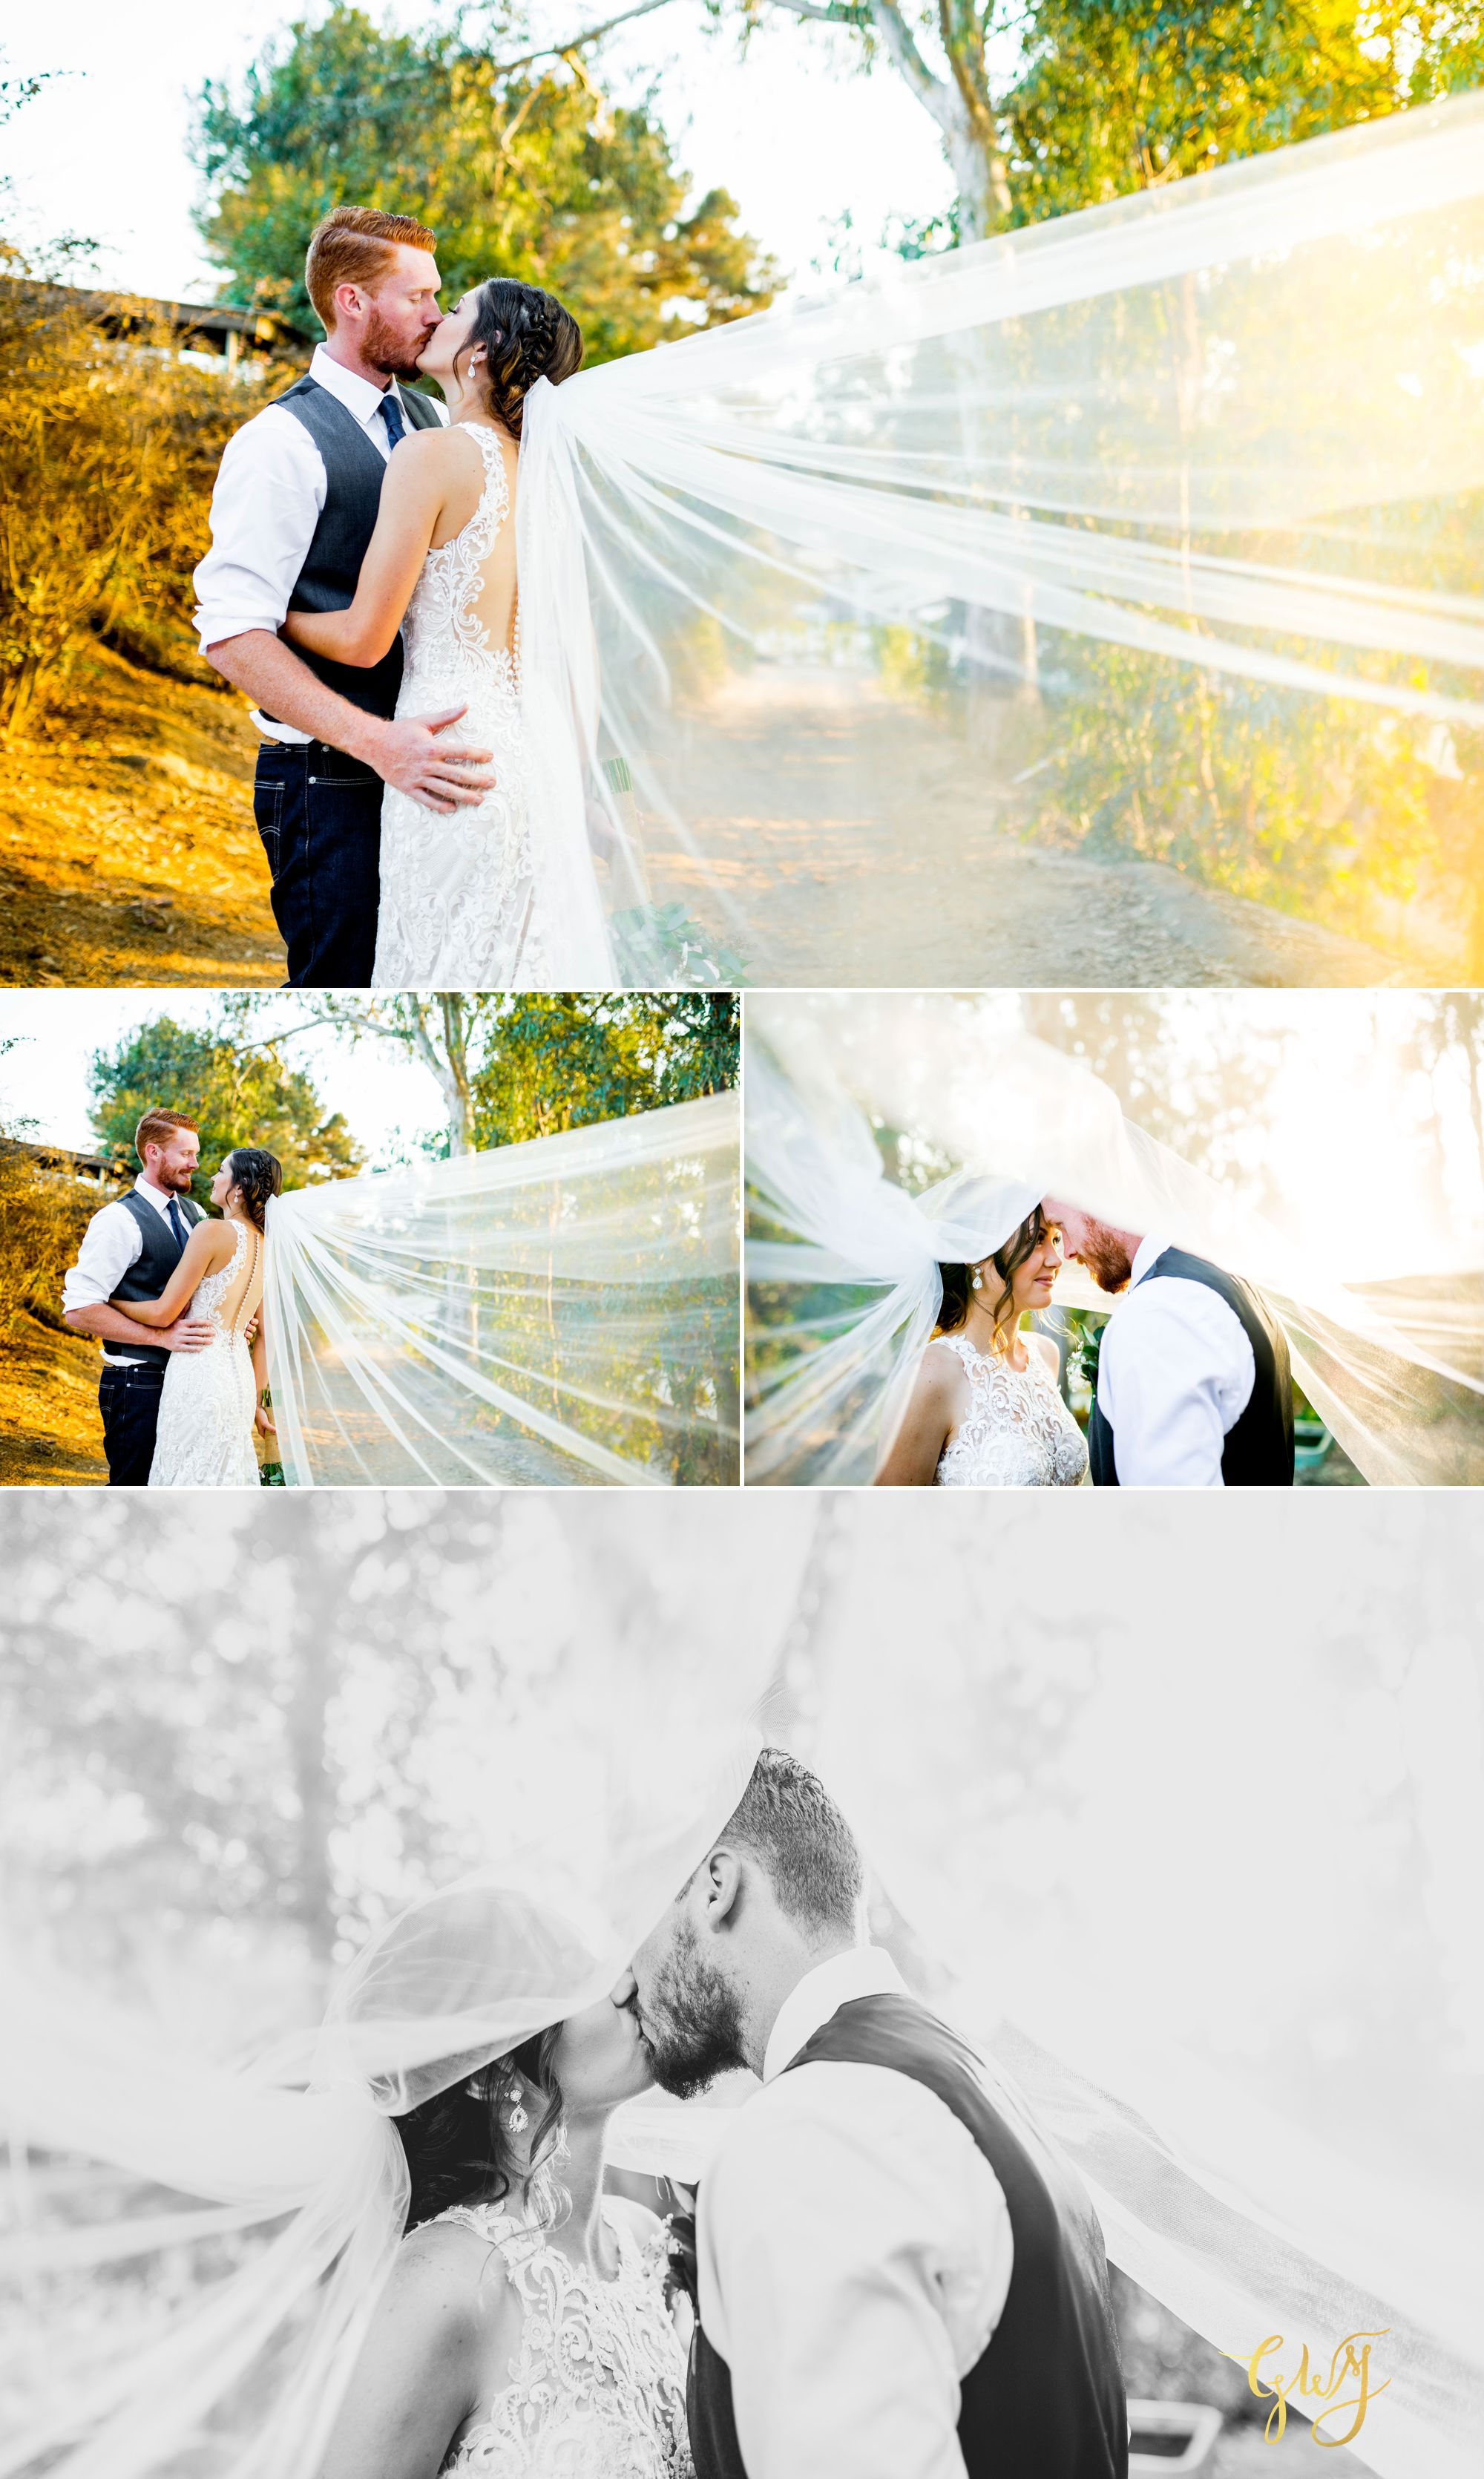 Hannah + Troy's Rustic Red Horse Barn Huntington Beach Wedding 46.jpg